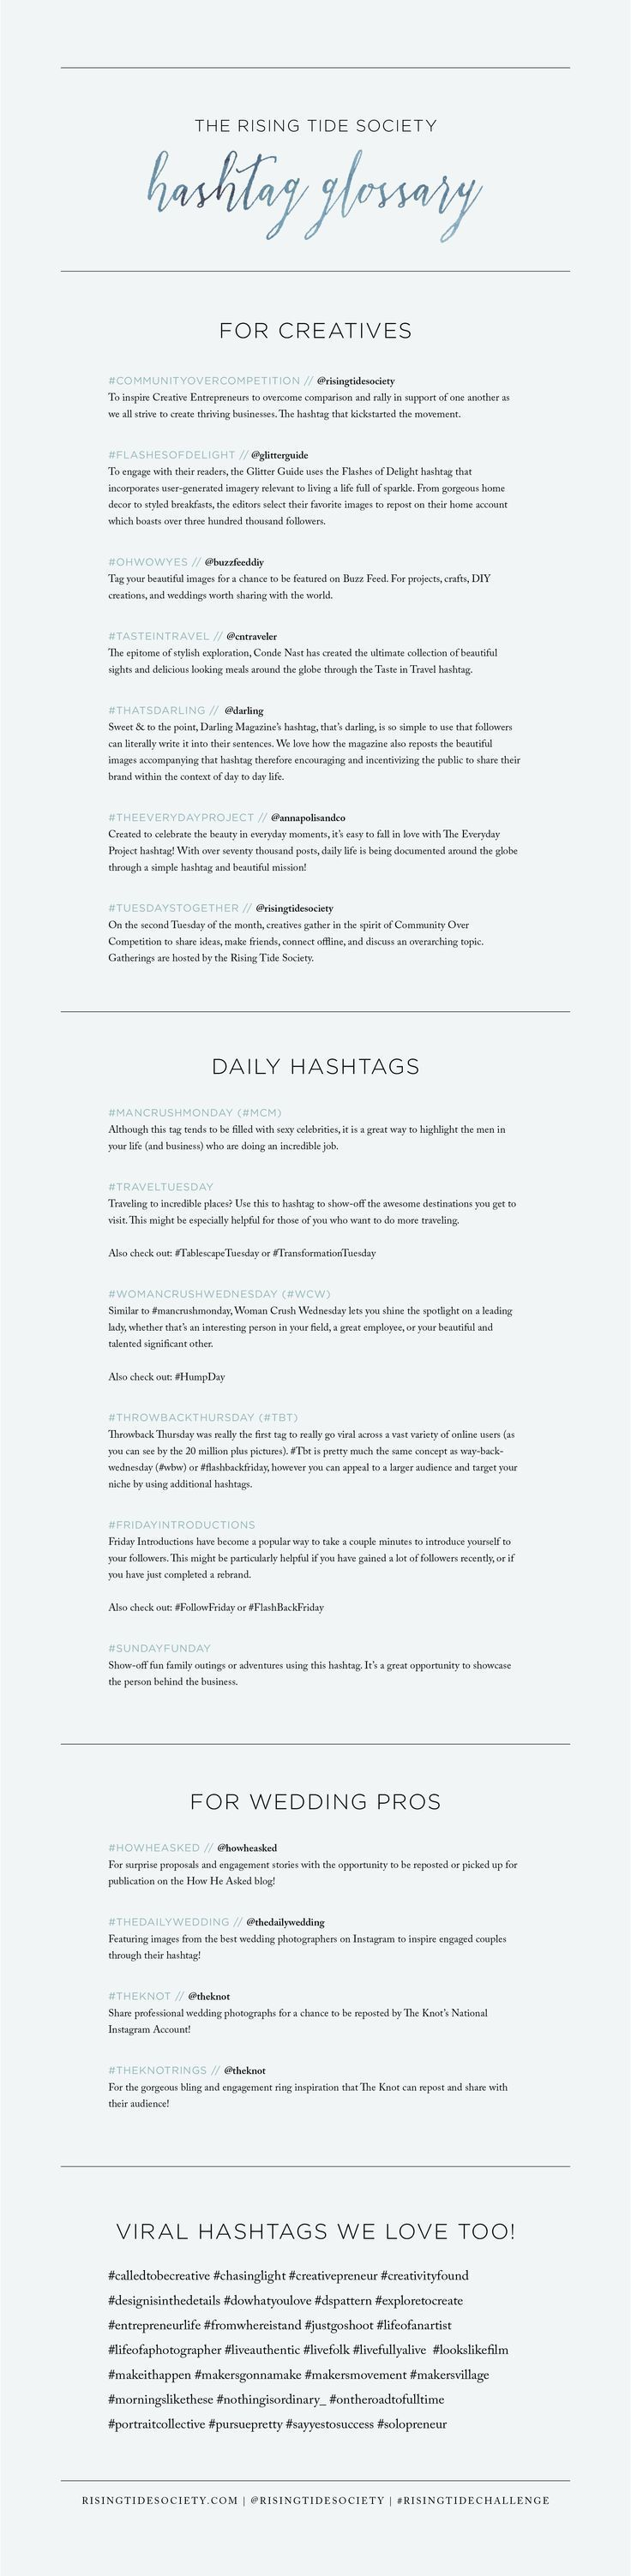 A Full List of Instagram Hashtags for Creative Entrepreneurs via The Rising Tide Society // #creatives #instagram